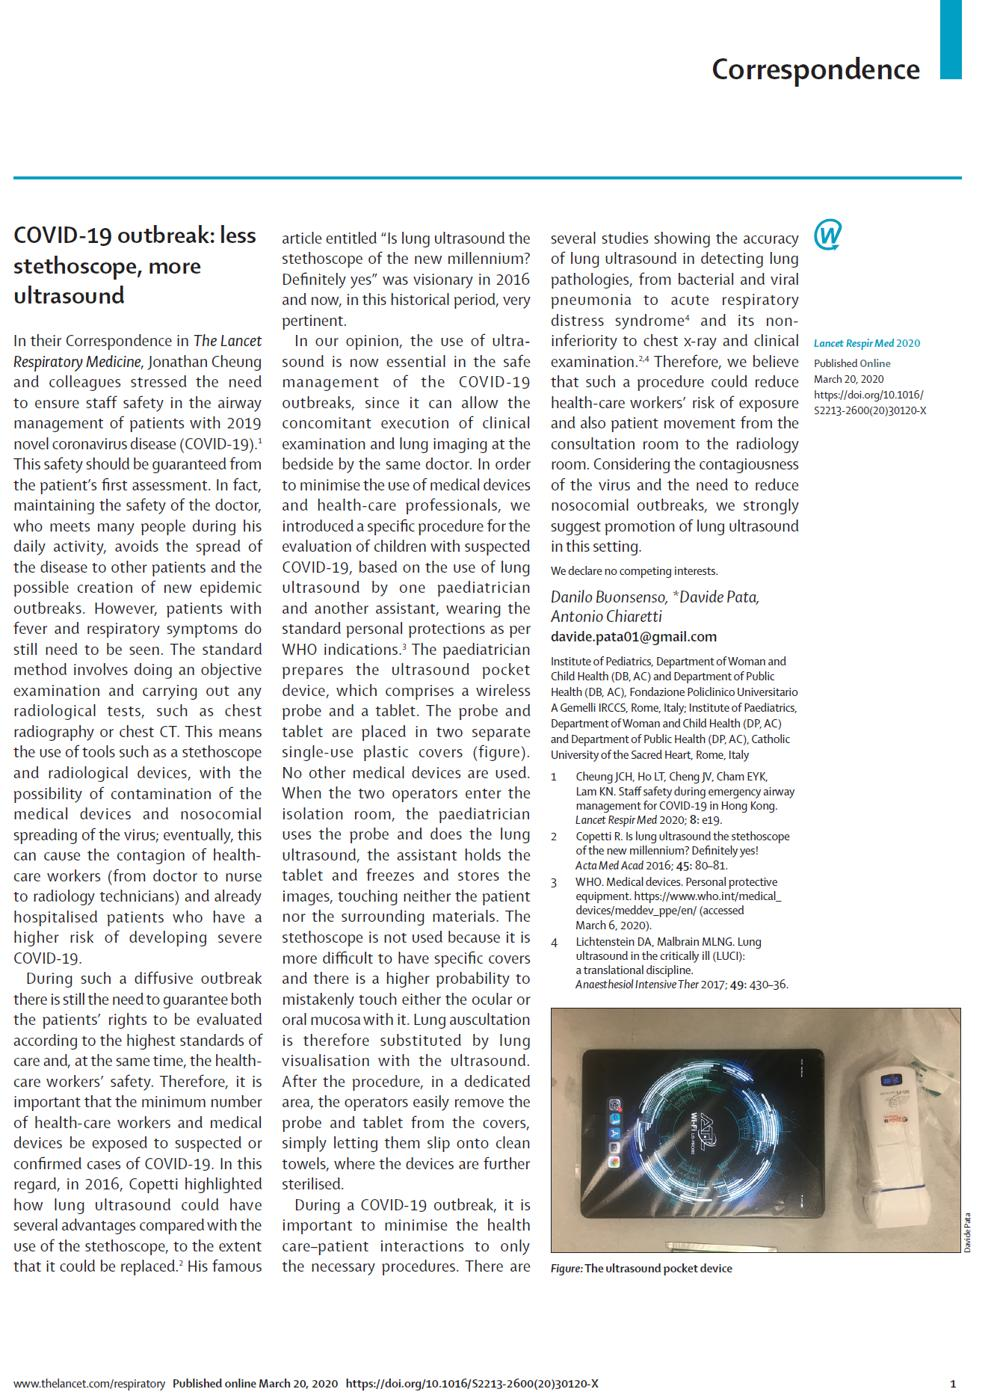 The Lancet - COVID-19 outbreak: less stethoscope, more ultrasound